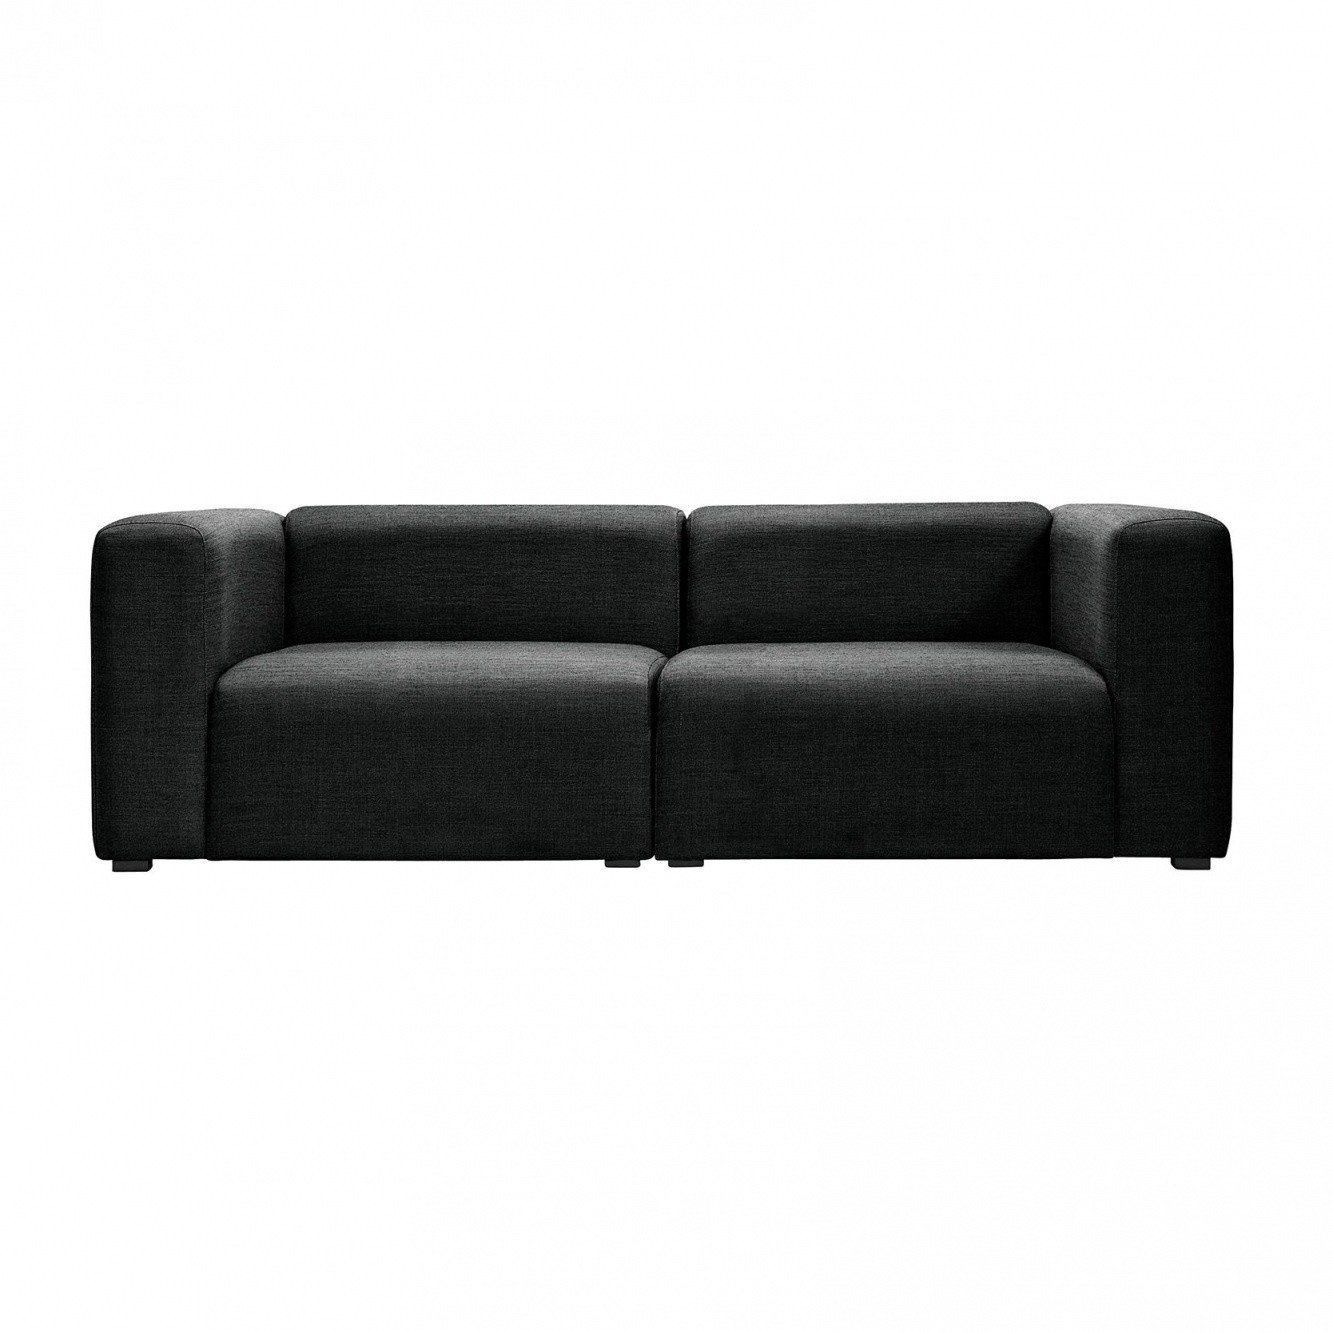 hay mags sofa fabrics 3 seater bed next day delivery 2 5 fabric surface ambientedirect